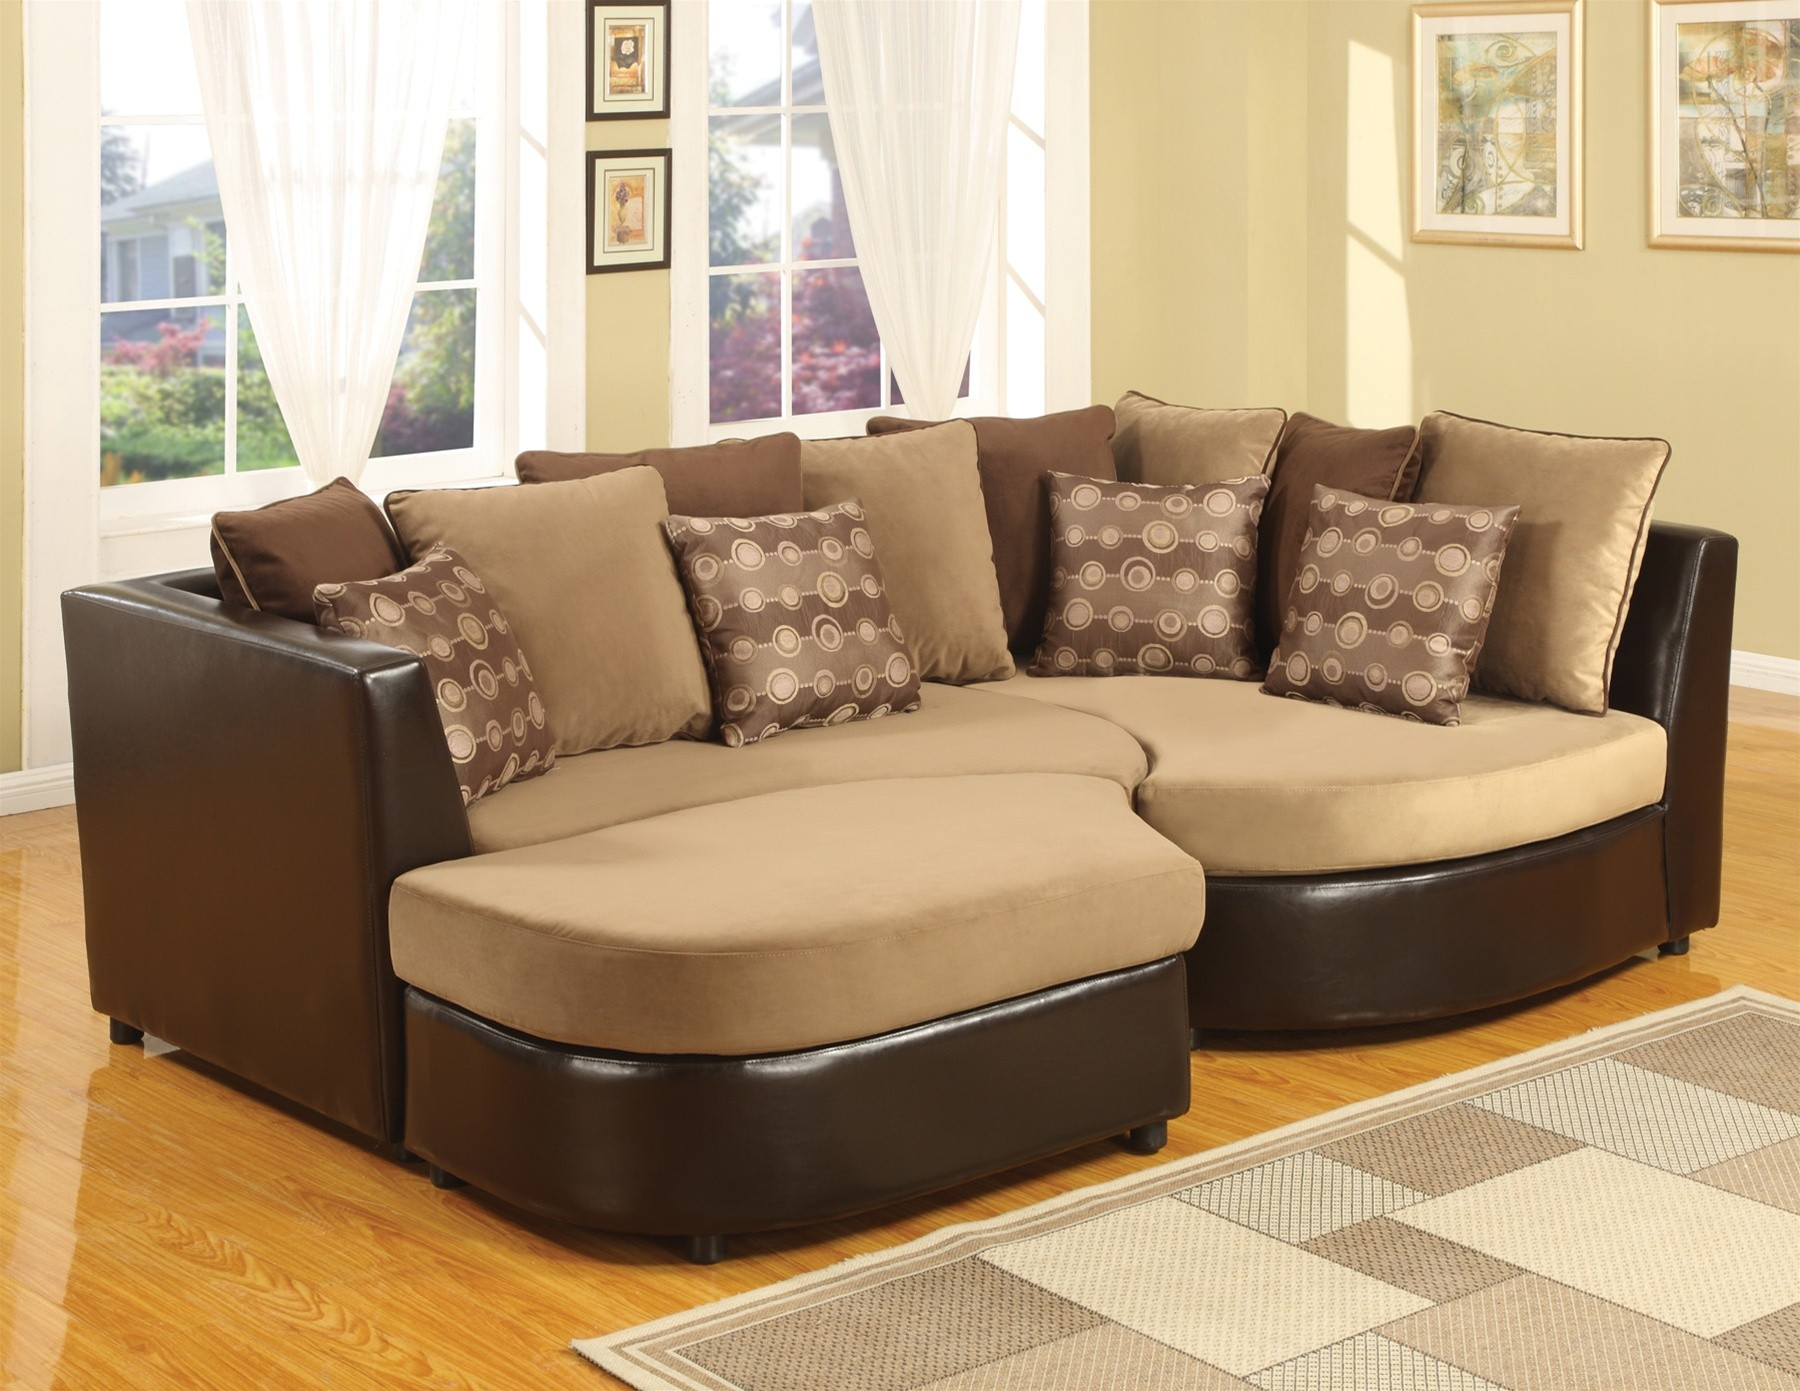 Moon pit sofa couch sofa ideas interior design for Choosing furniture for a small living room